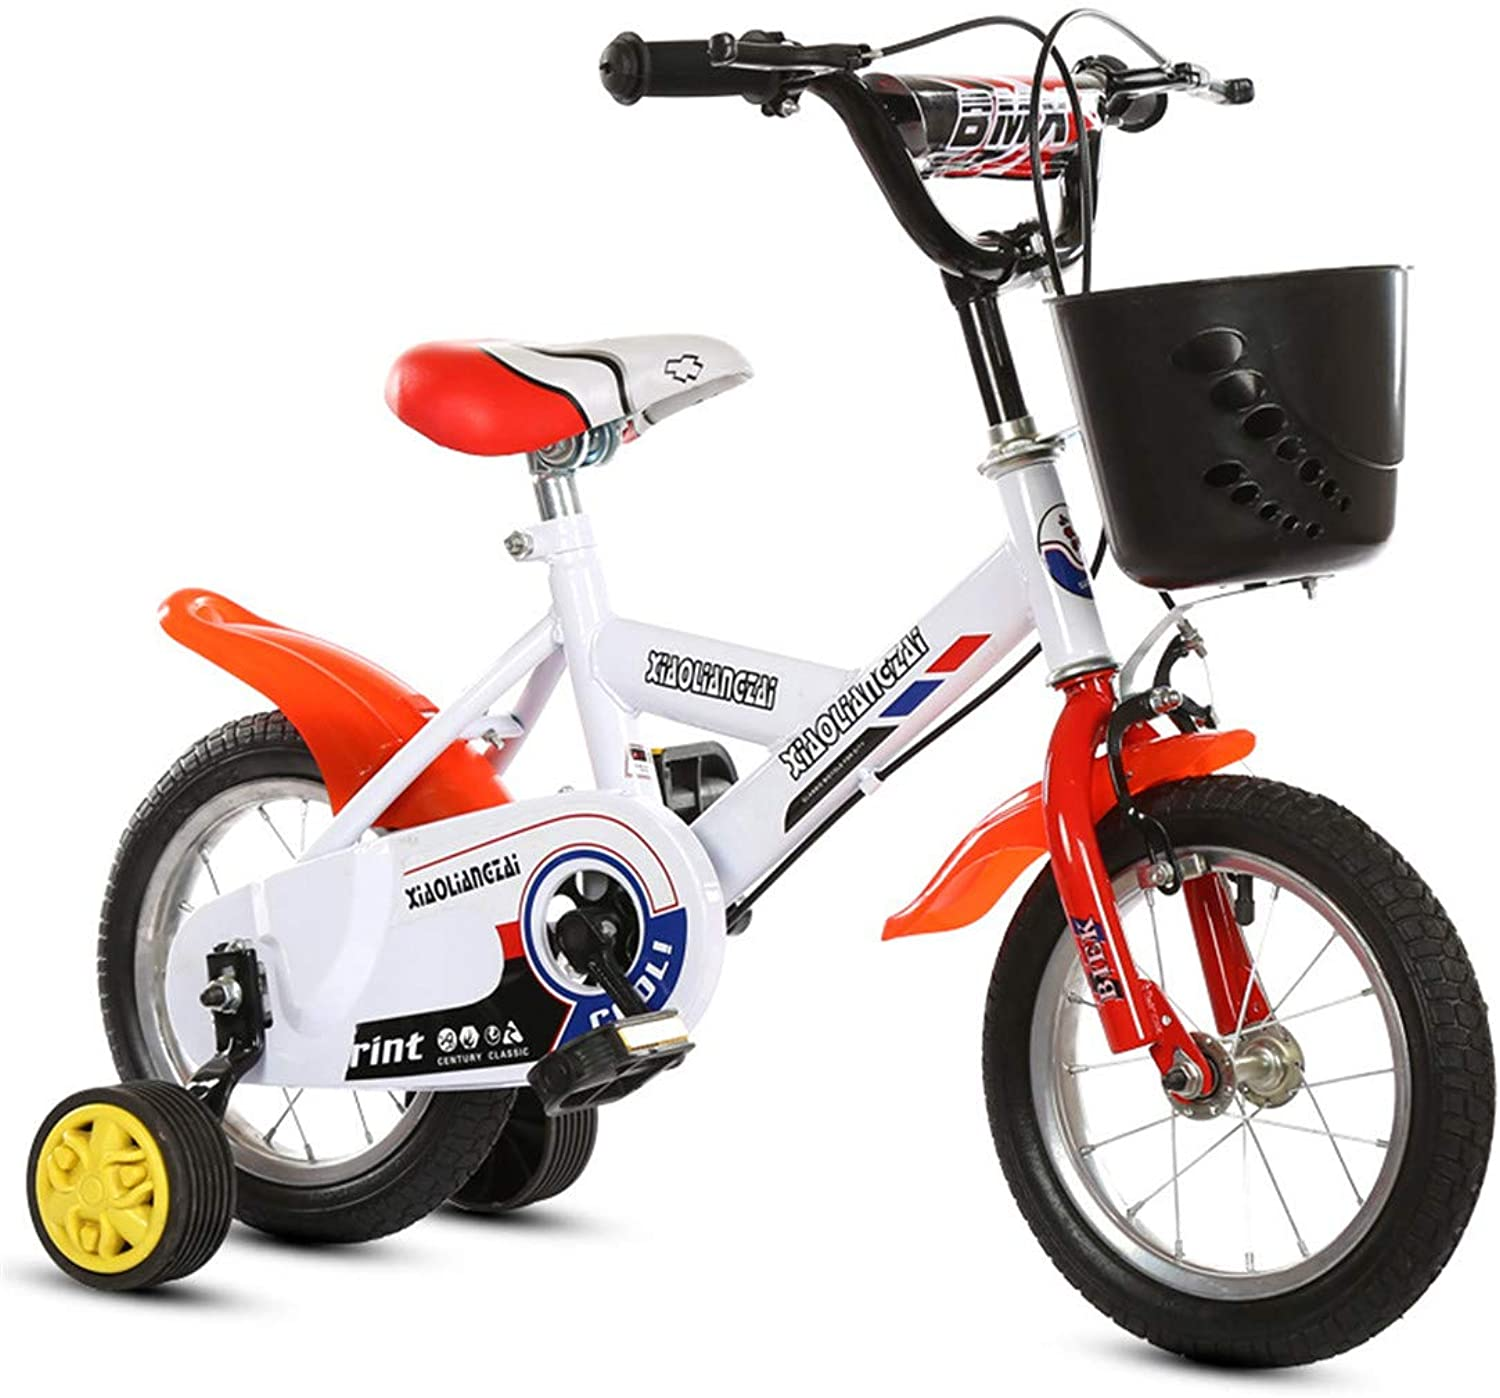 Kid Bike With Detachable Training Wheels Bicycle High Carbon Steel Frame